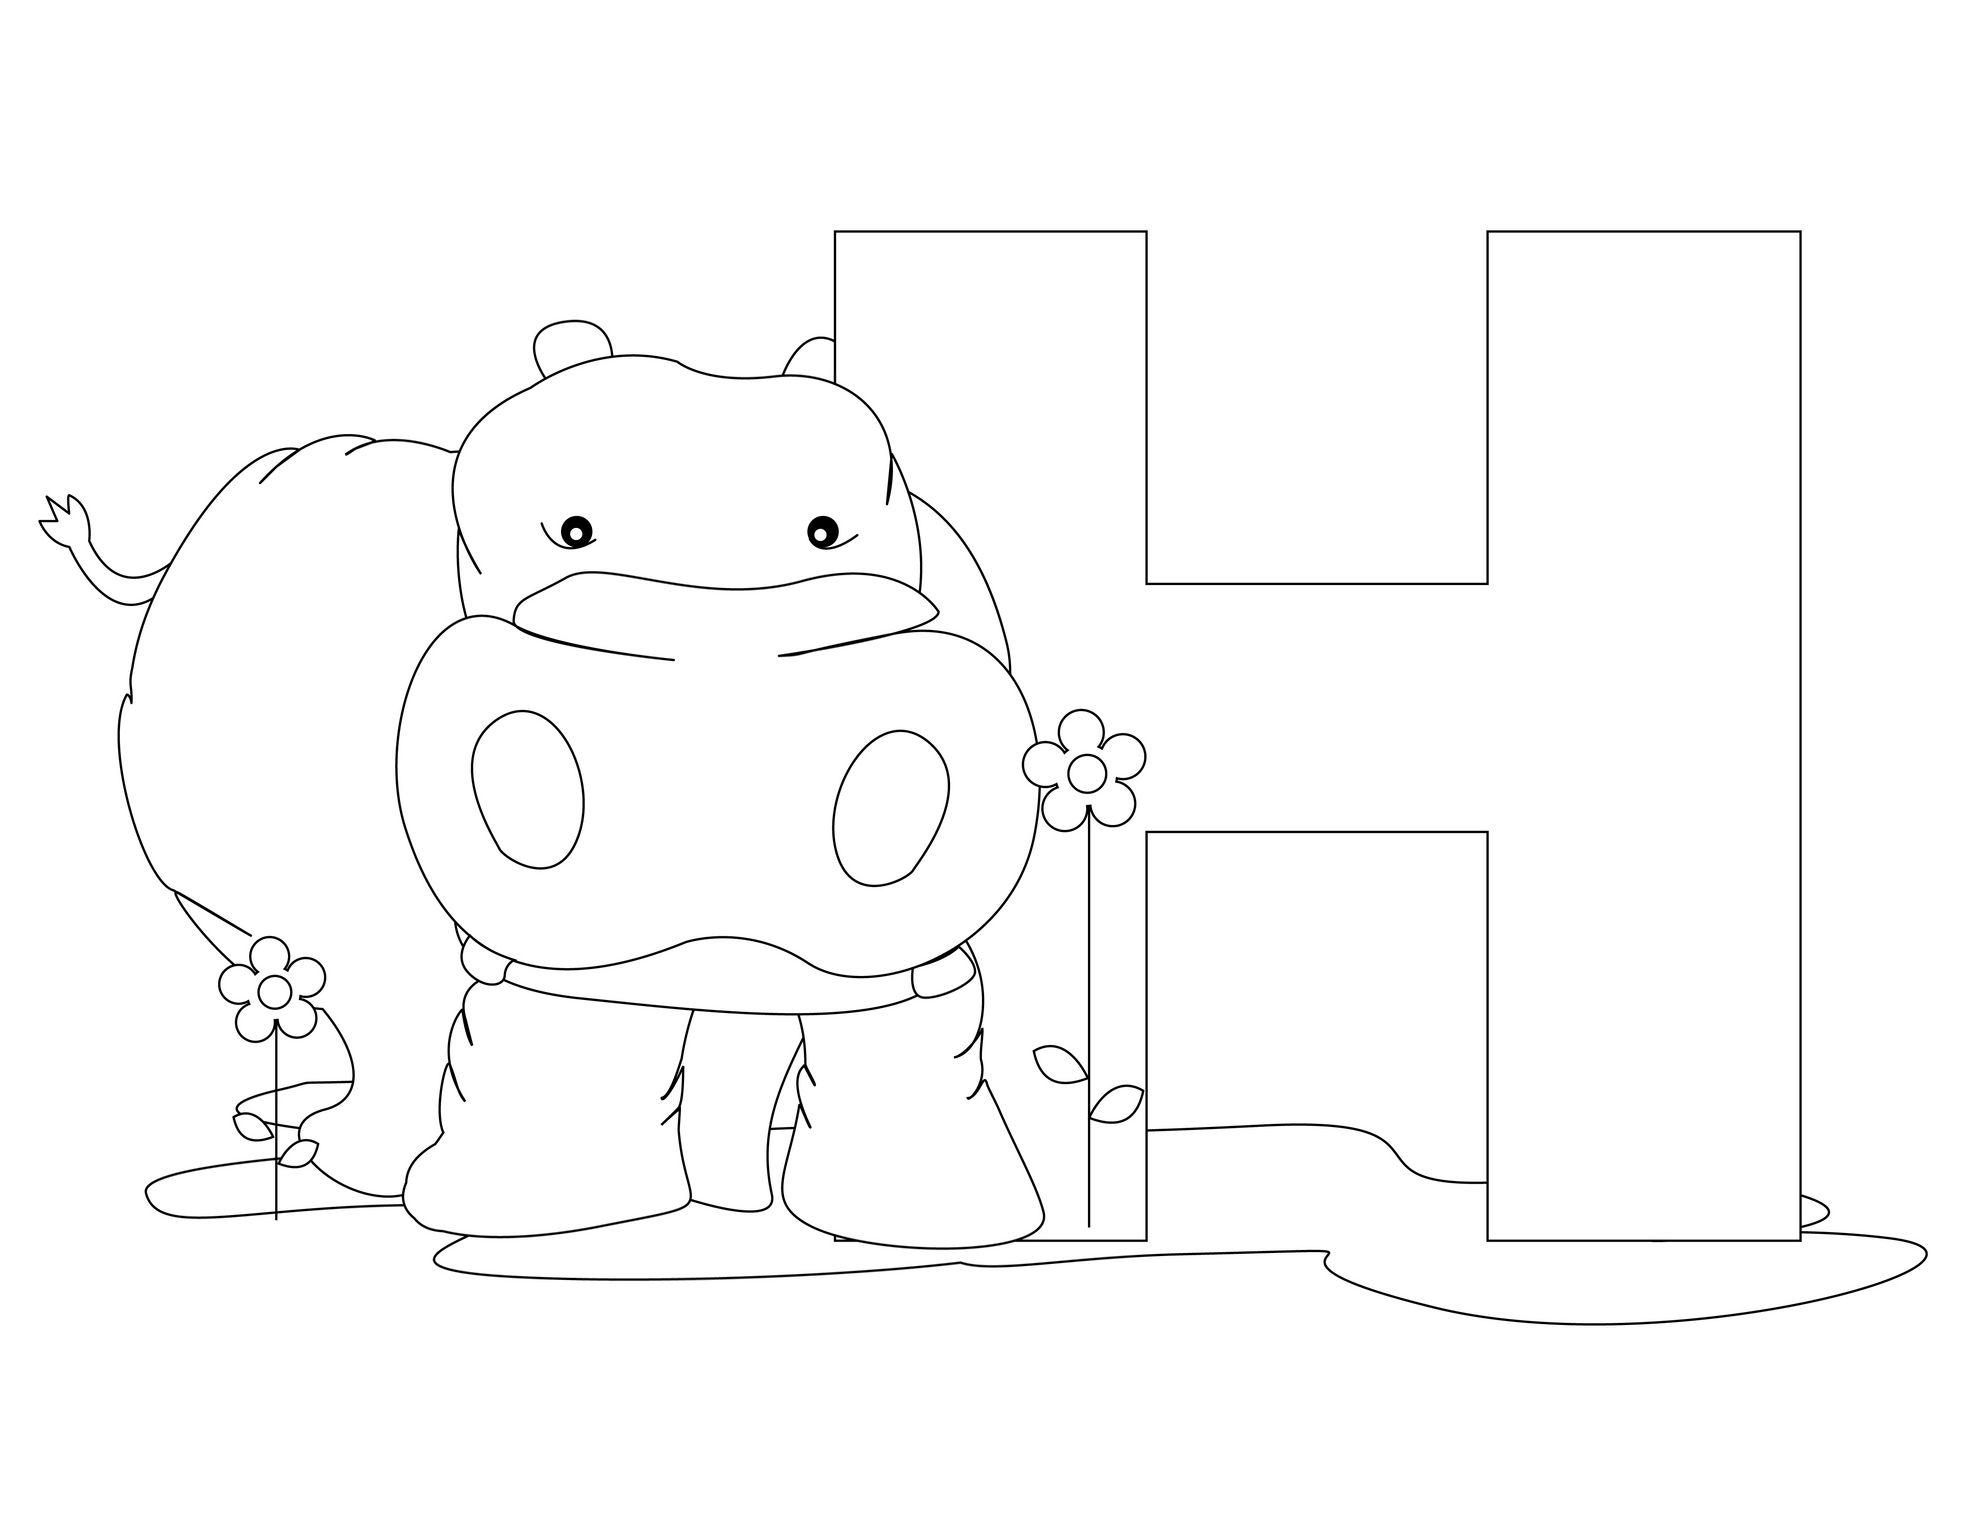 baby abc coloring pages - photo#45